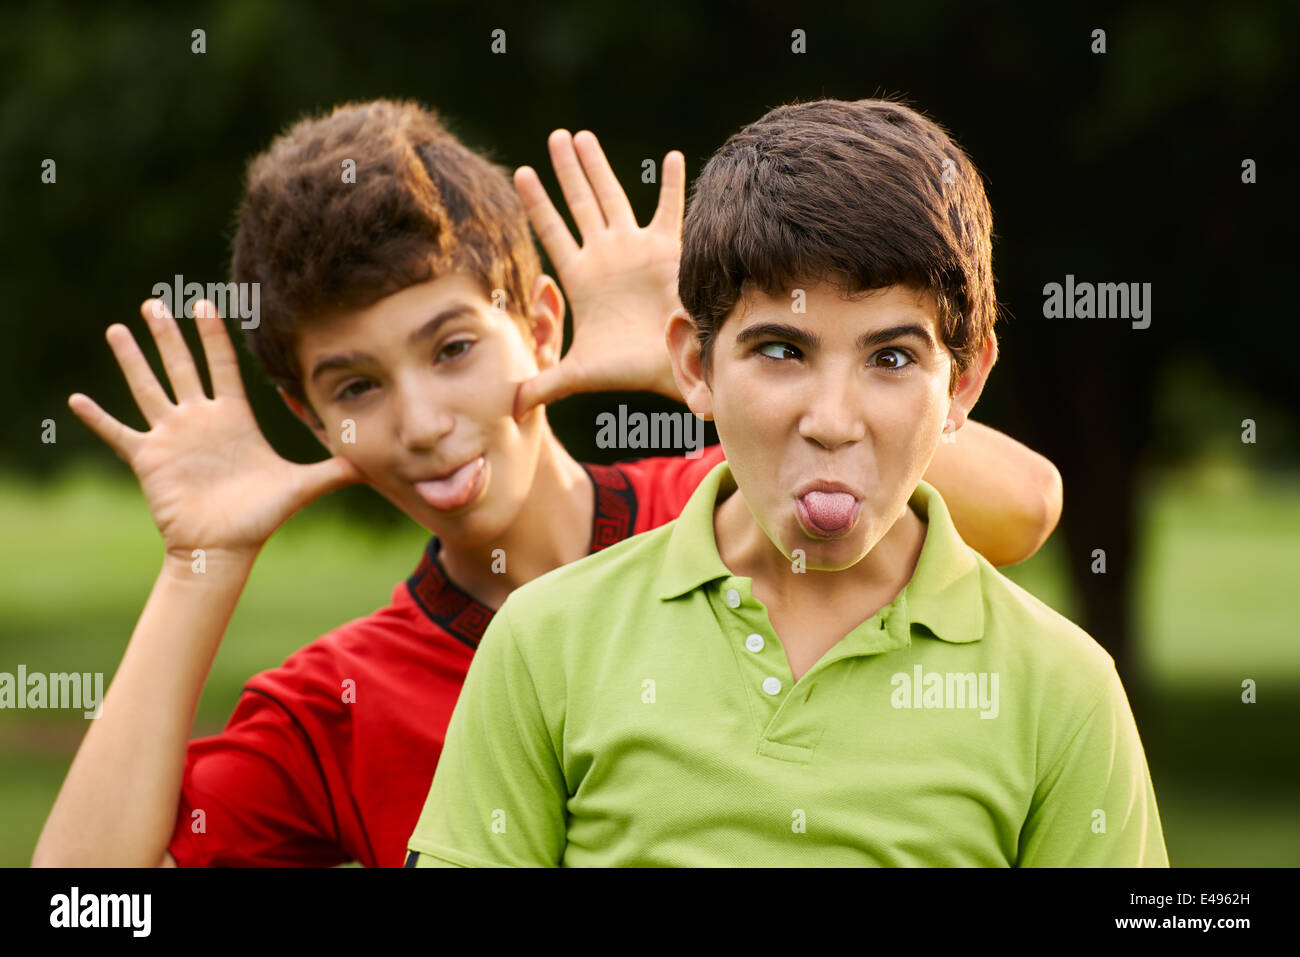 Portrait of happy hispanic children, two brothers, making a face and grimacing at camera outdoors in park - Stock Image